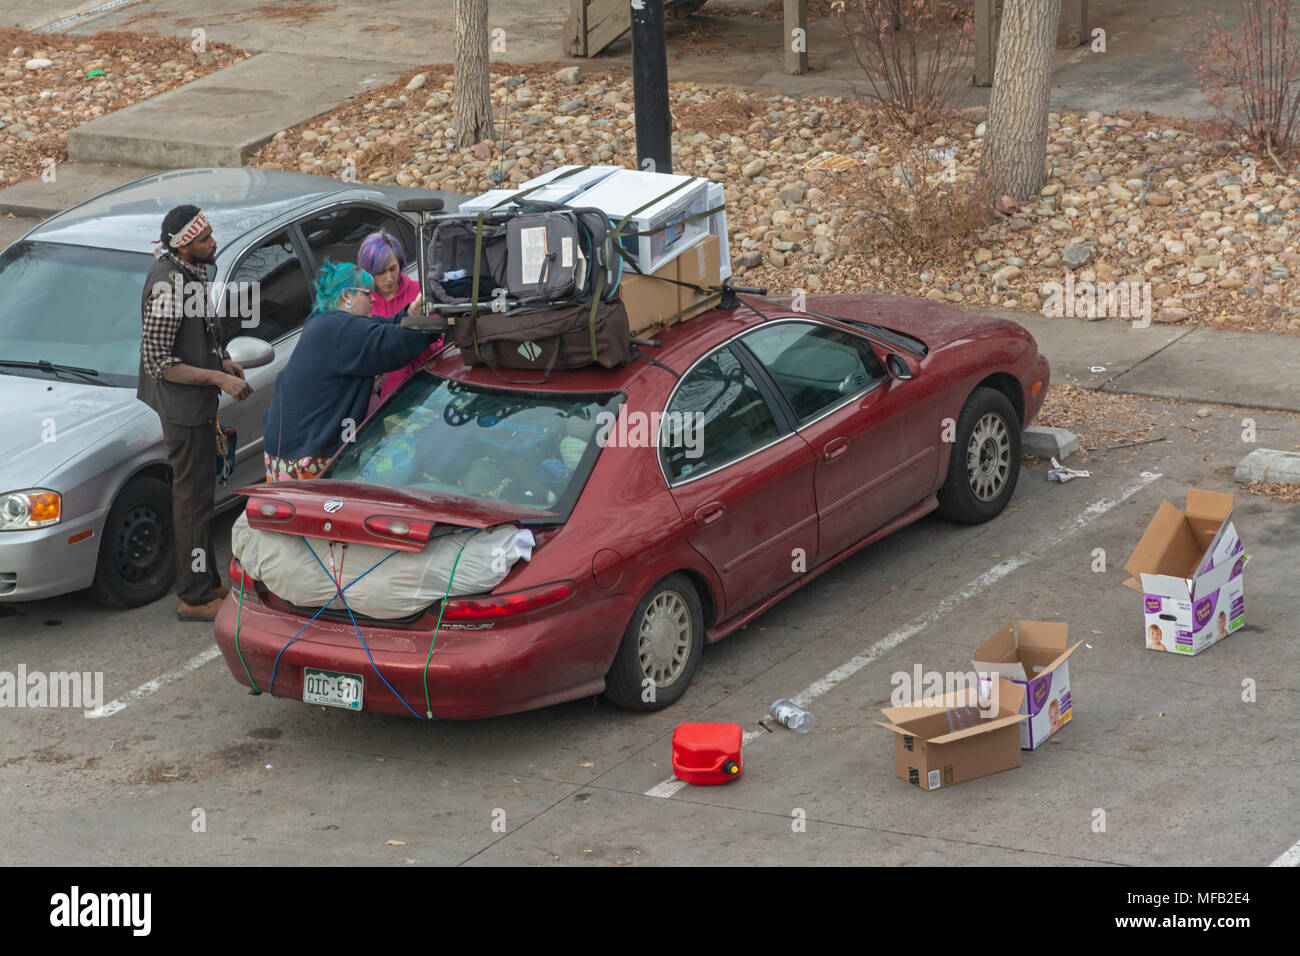 First of the month former renters of apartment building load all their belongings inside and on roof of car to move out, Aurora Colorado US. - Stock Image